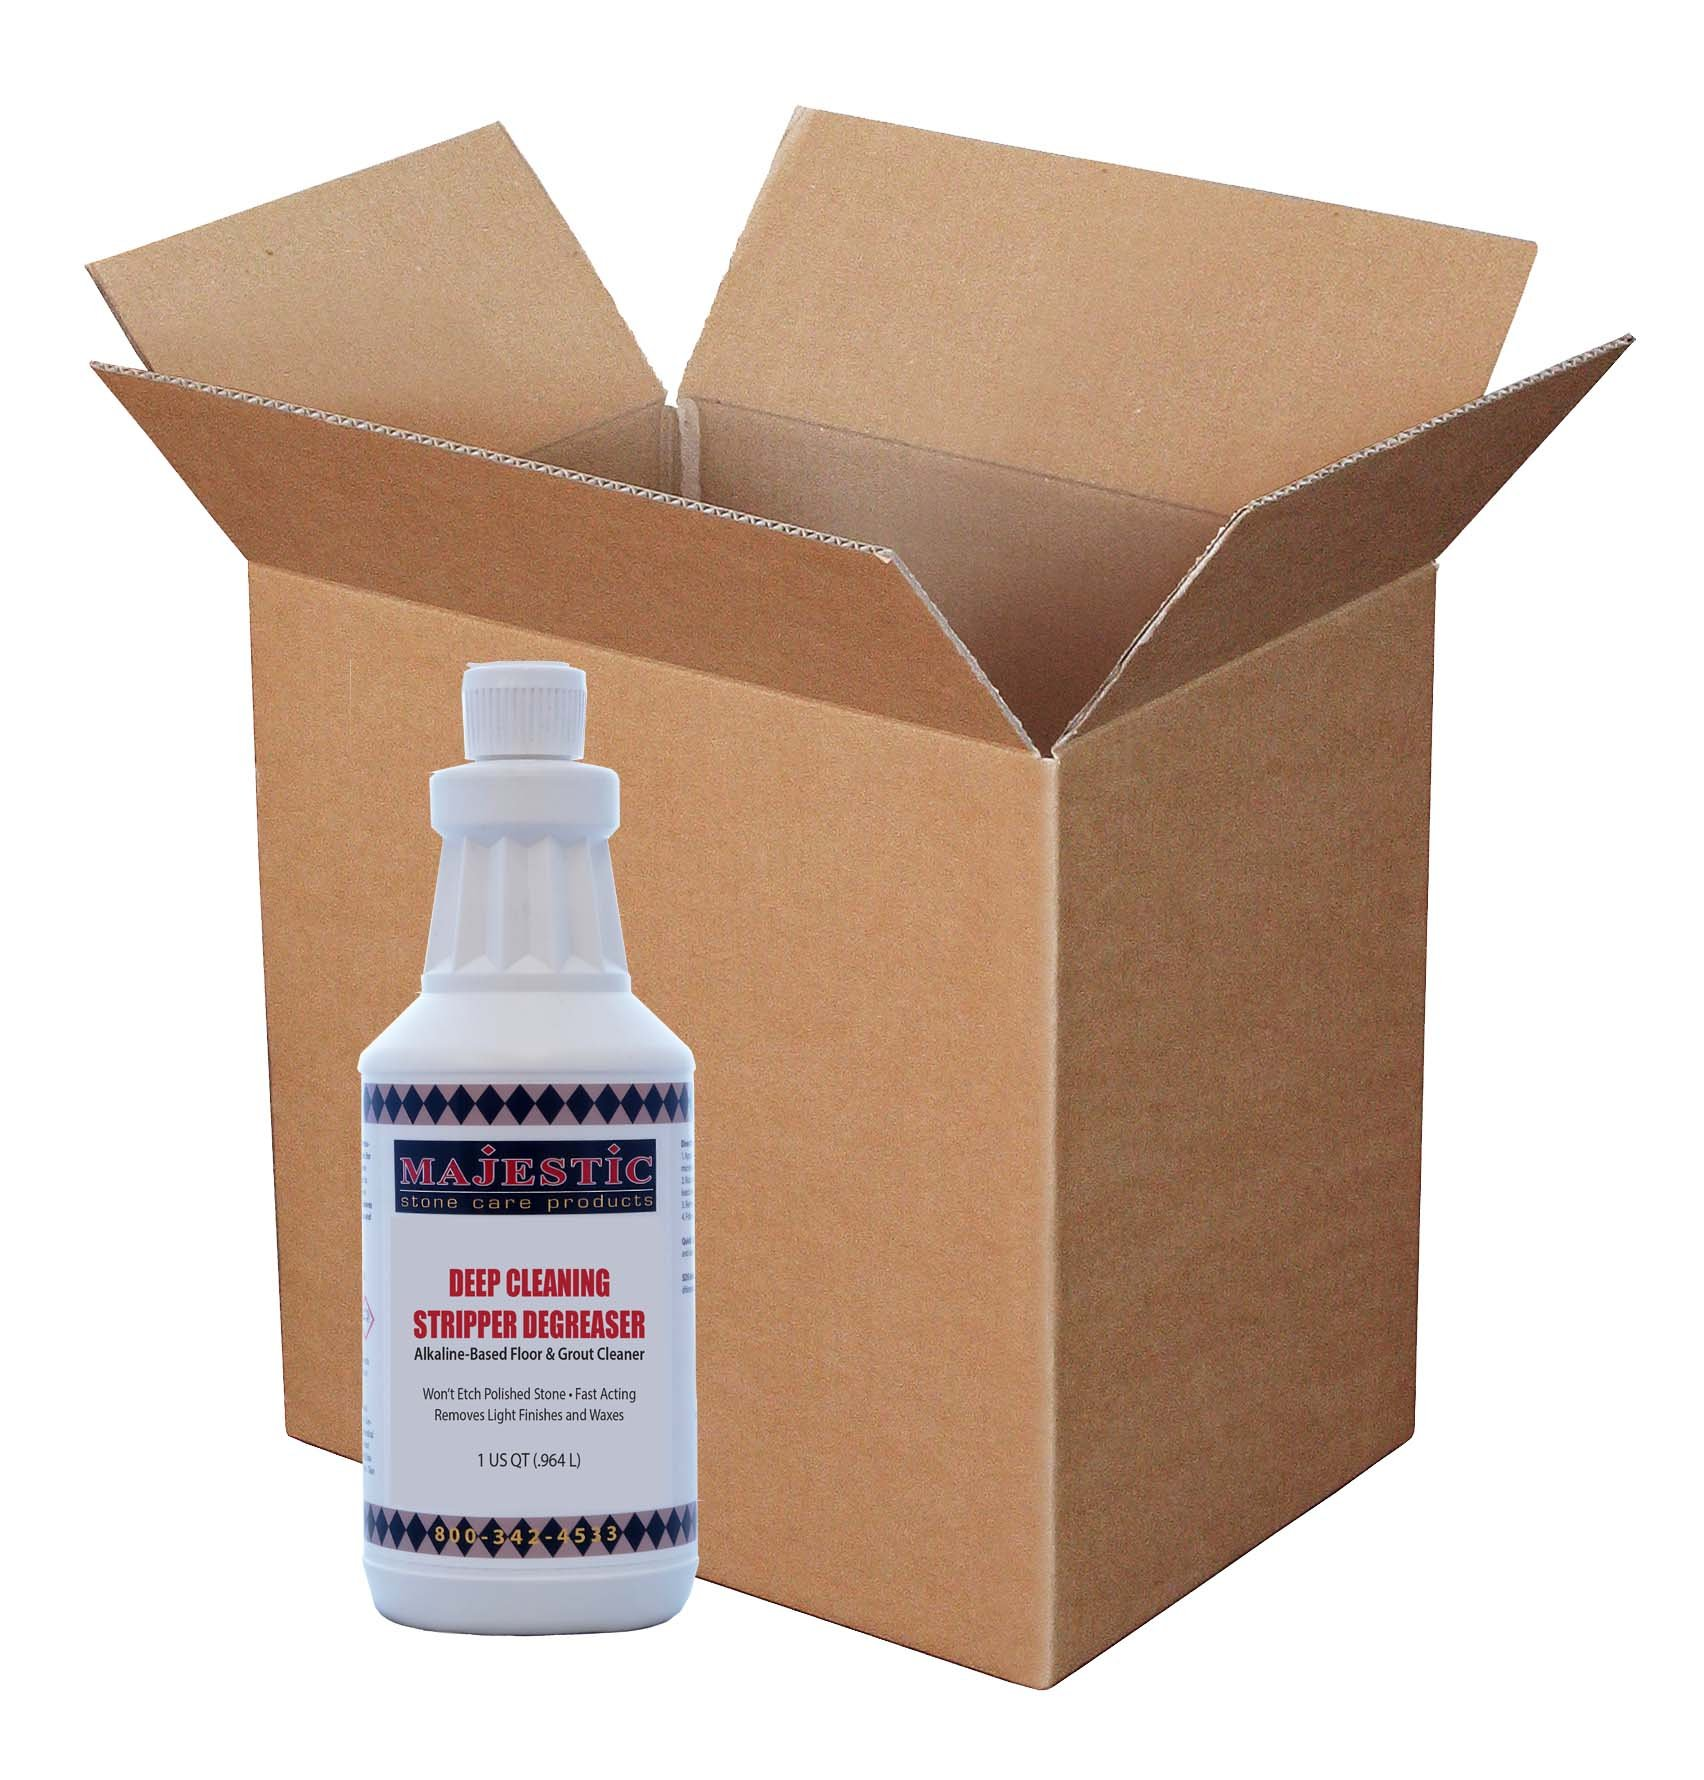 Deep Clean Stripper Degreaser (Case/12 Qts.) by Majestic Stone Care Products